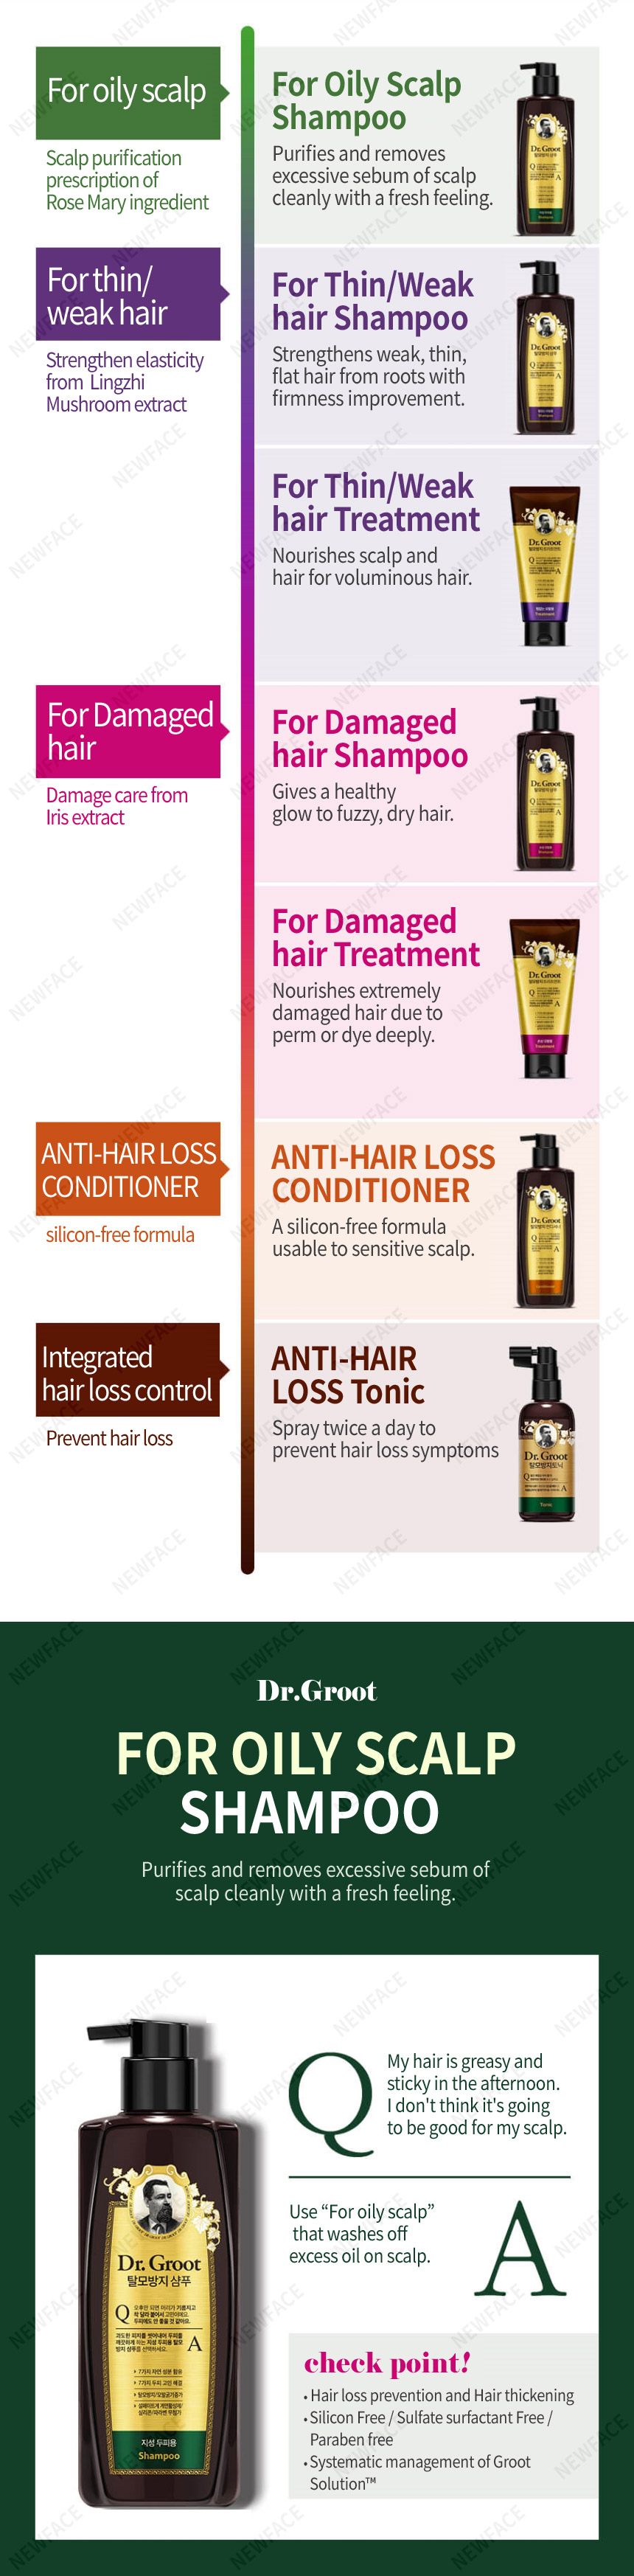 Image result for dr groot scalp tonic""